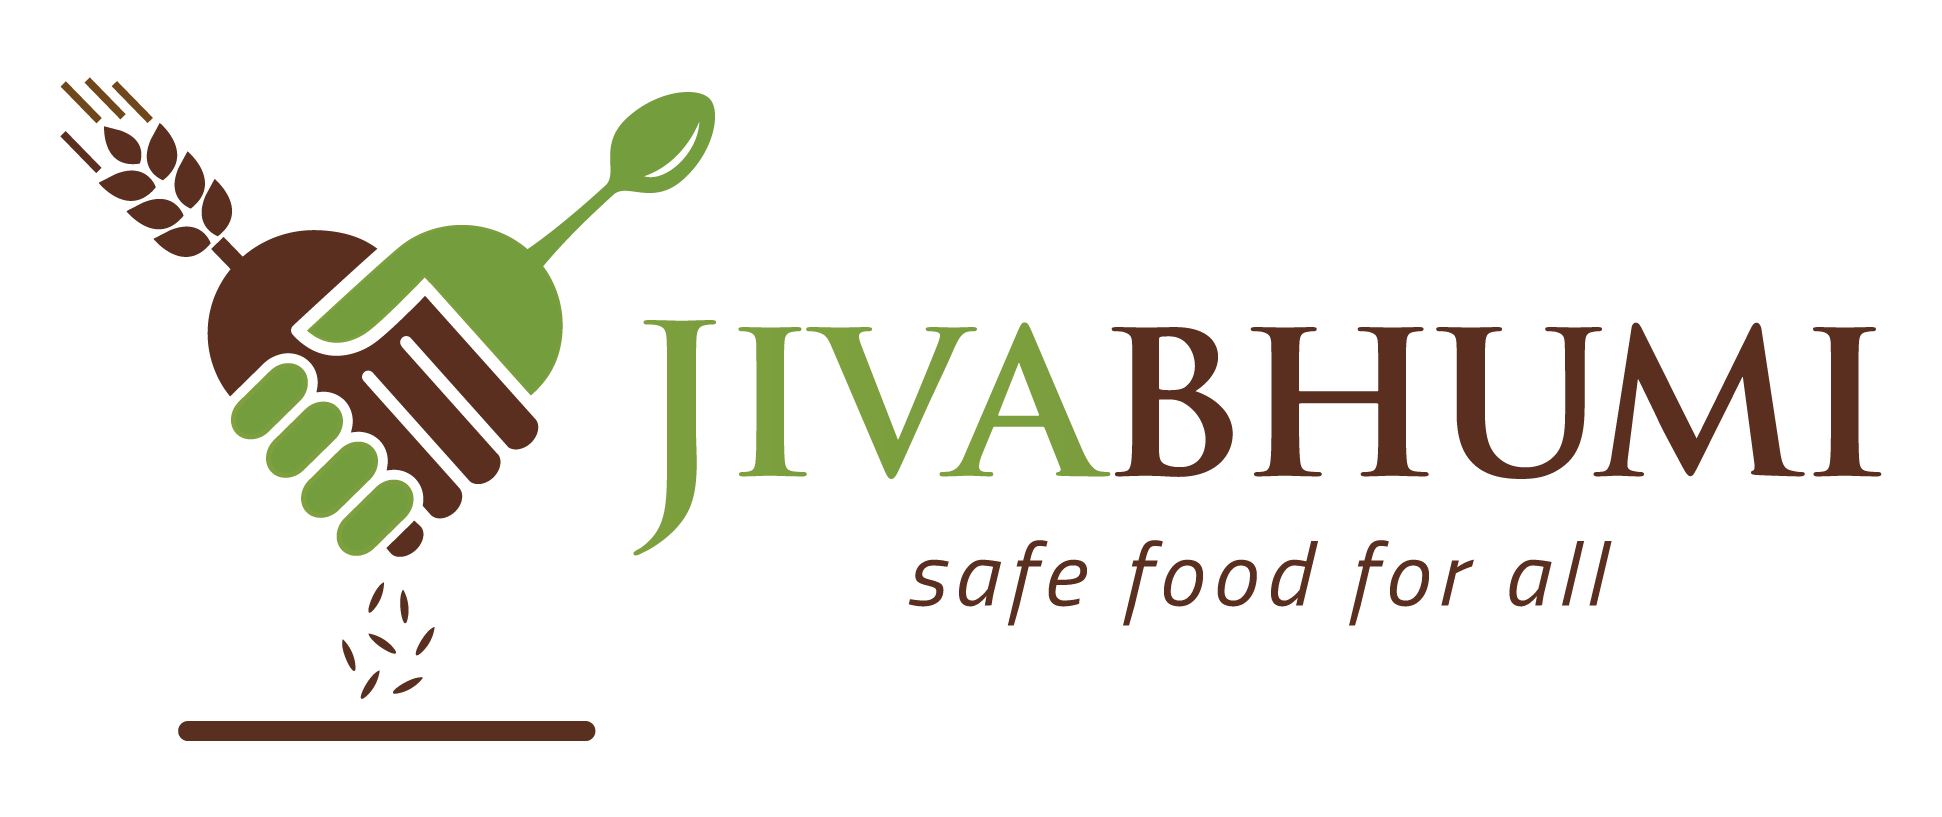 Jivabhumi - Safe food for all